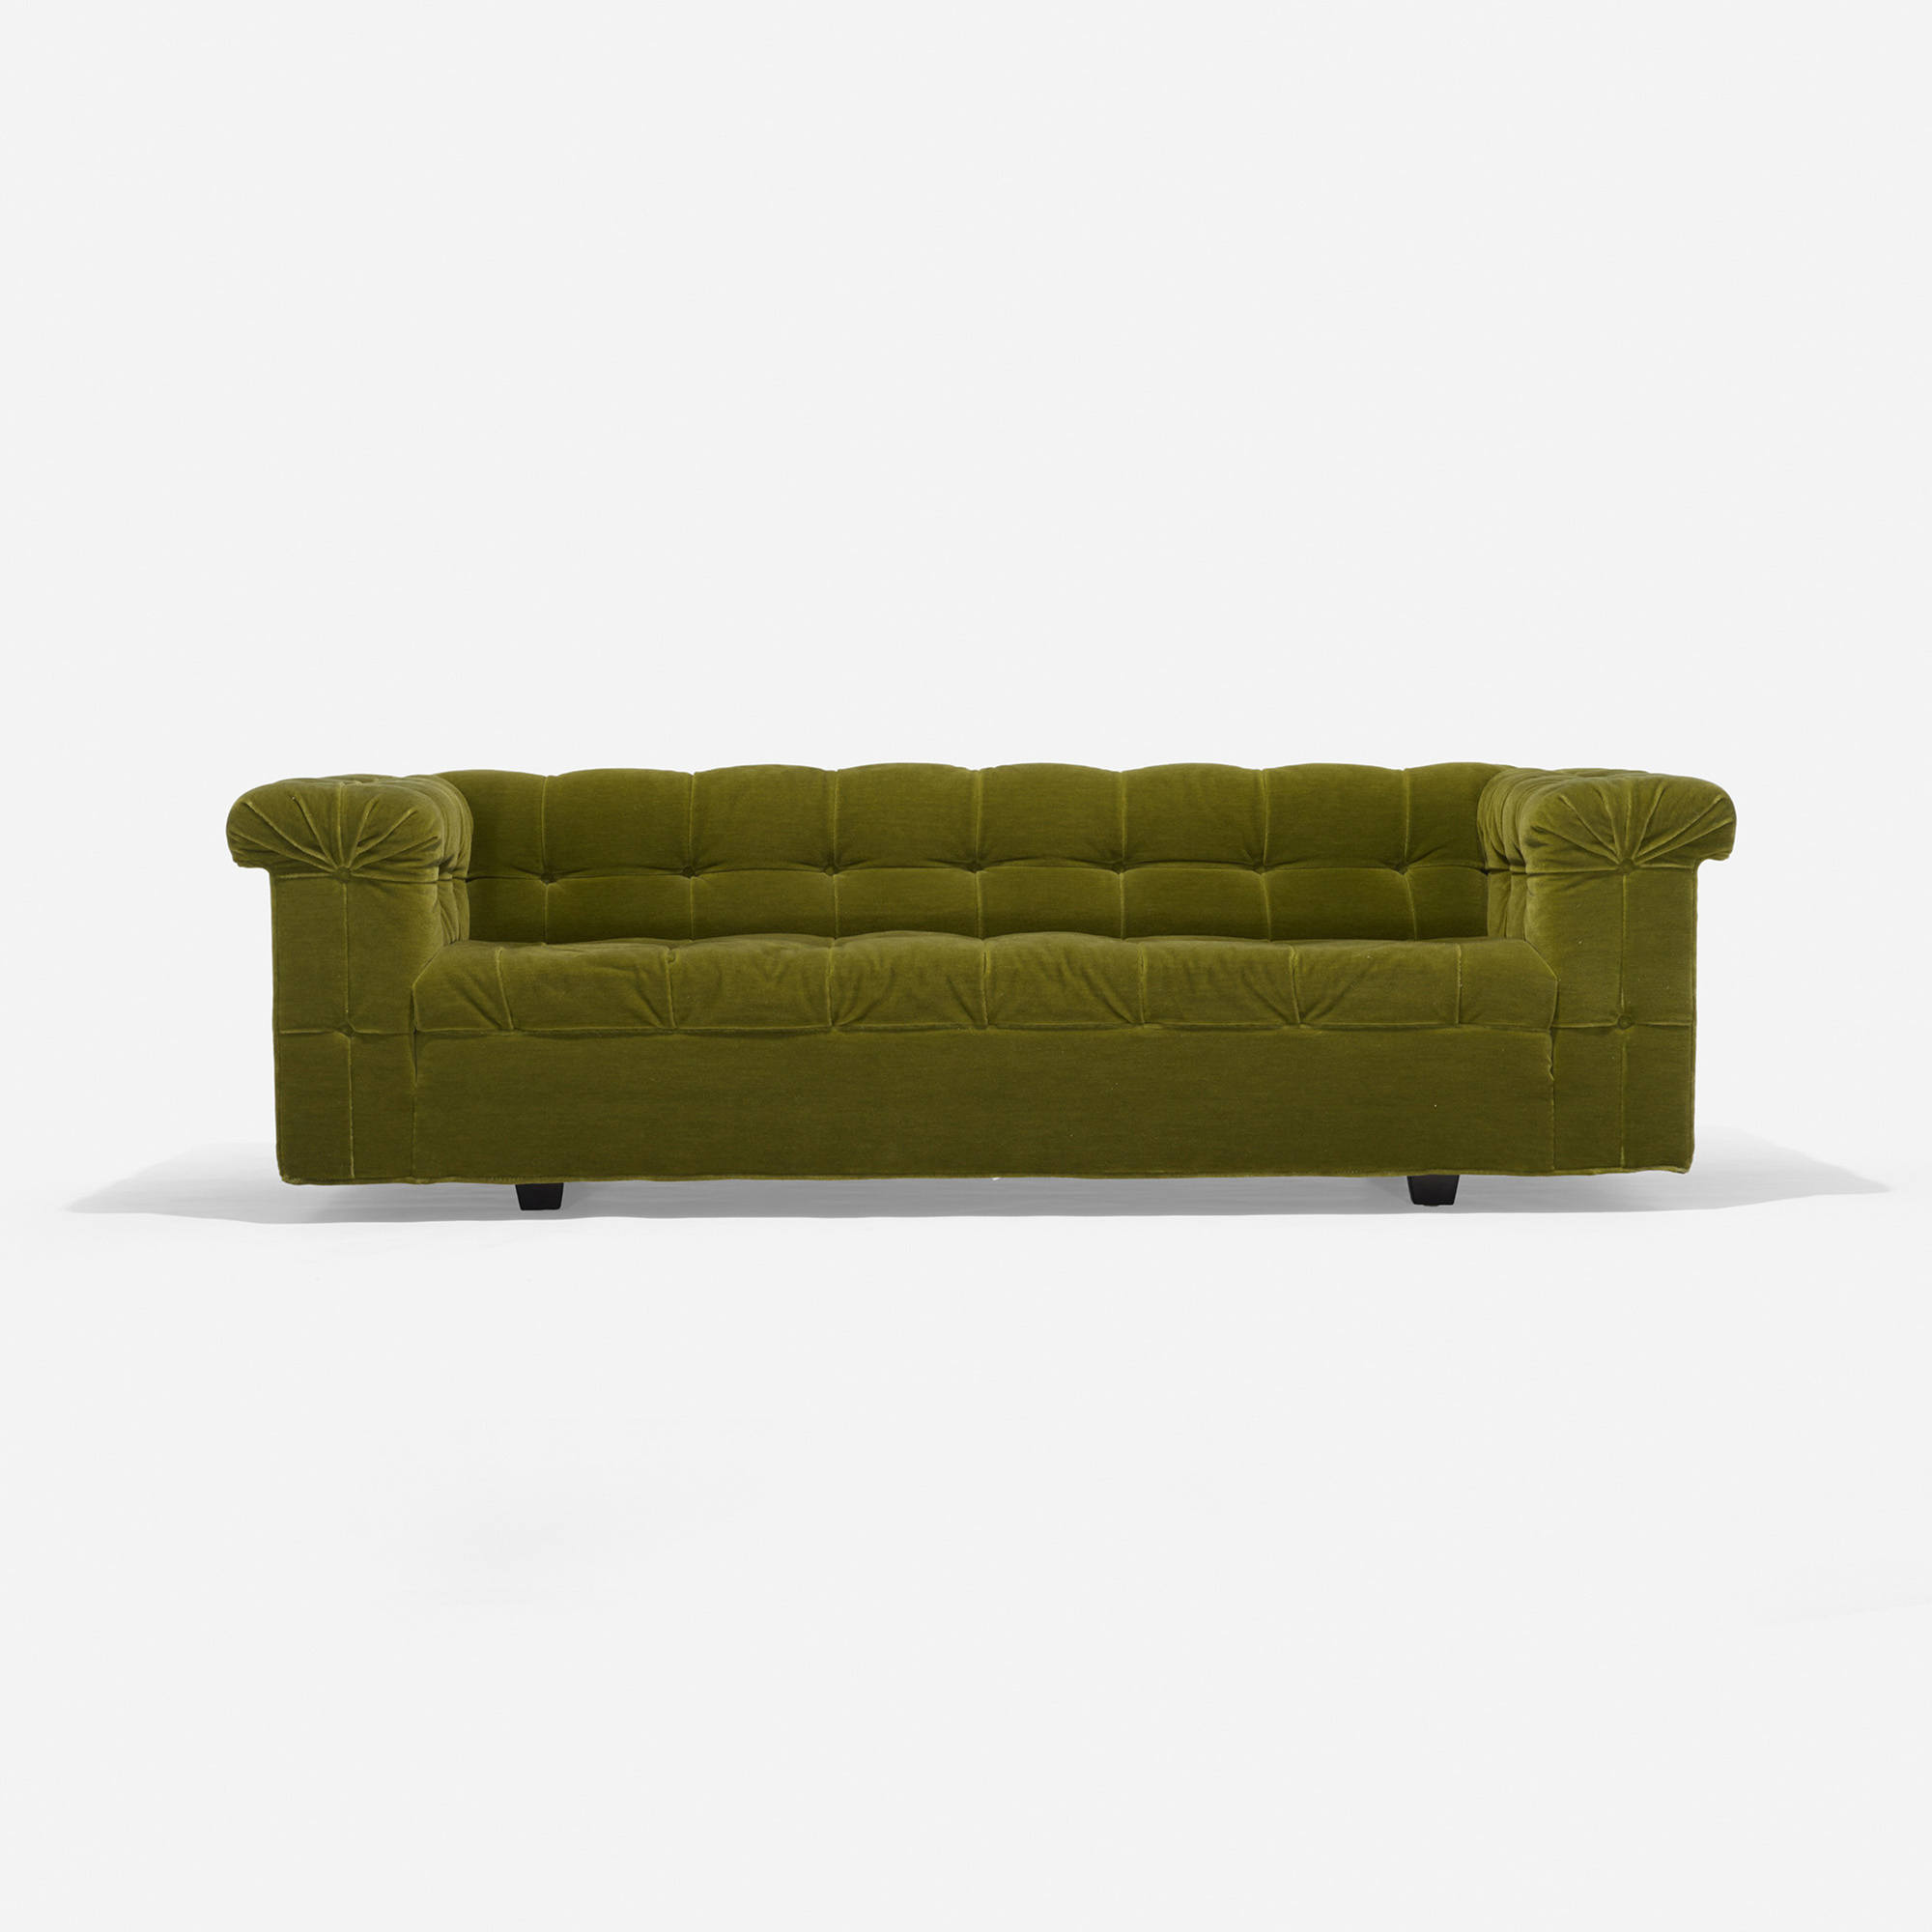 jean michel frank style sofa small beds uk auction by on artnet thesofa